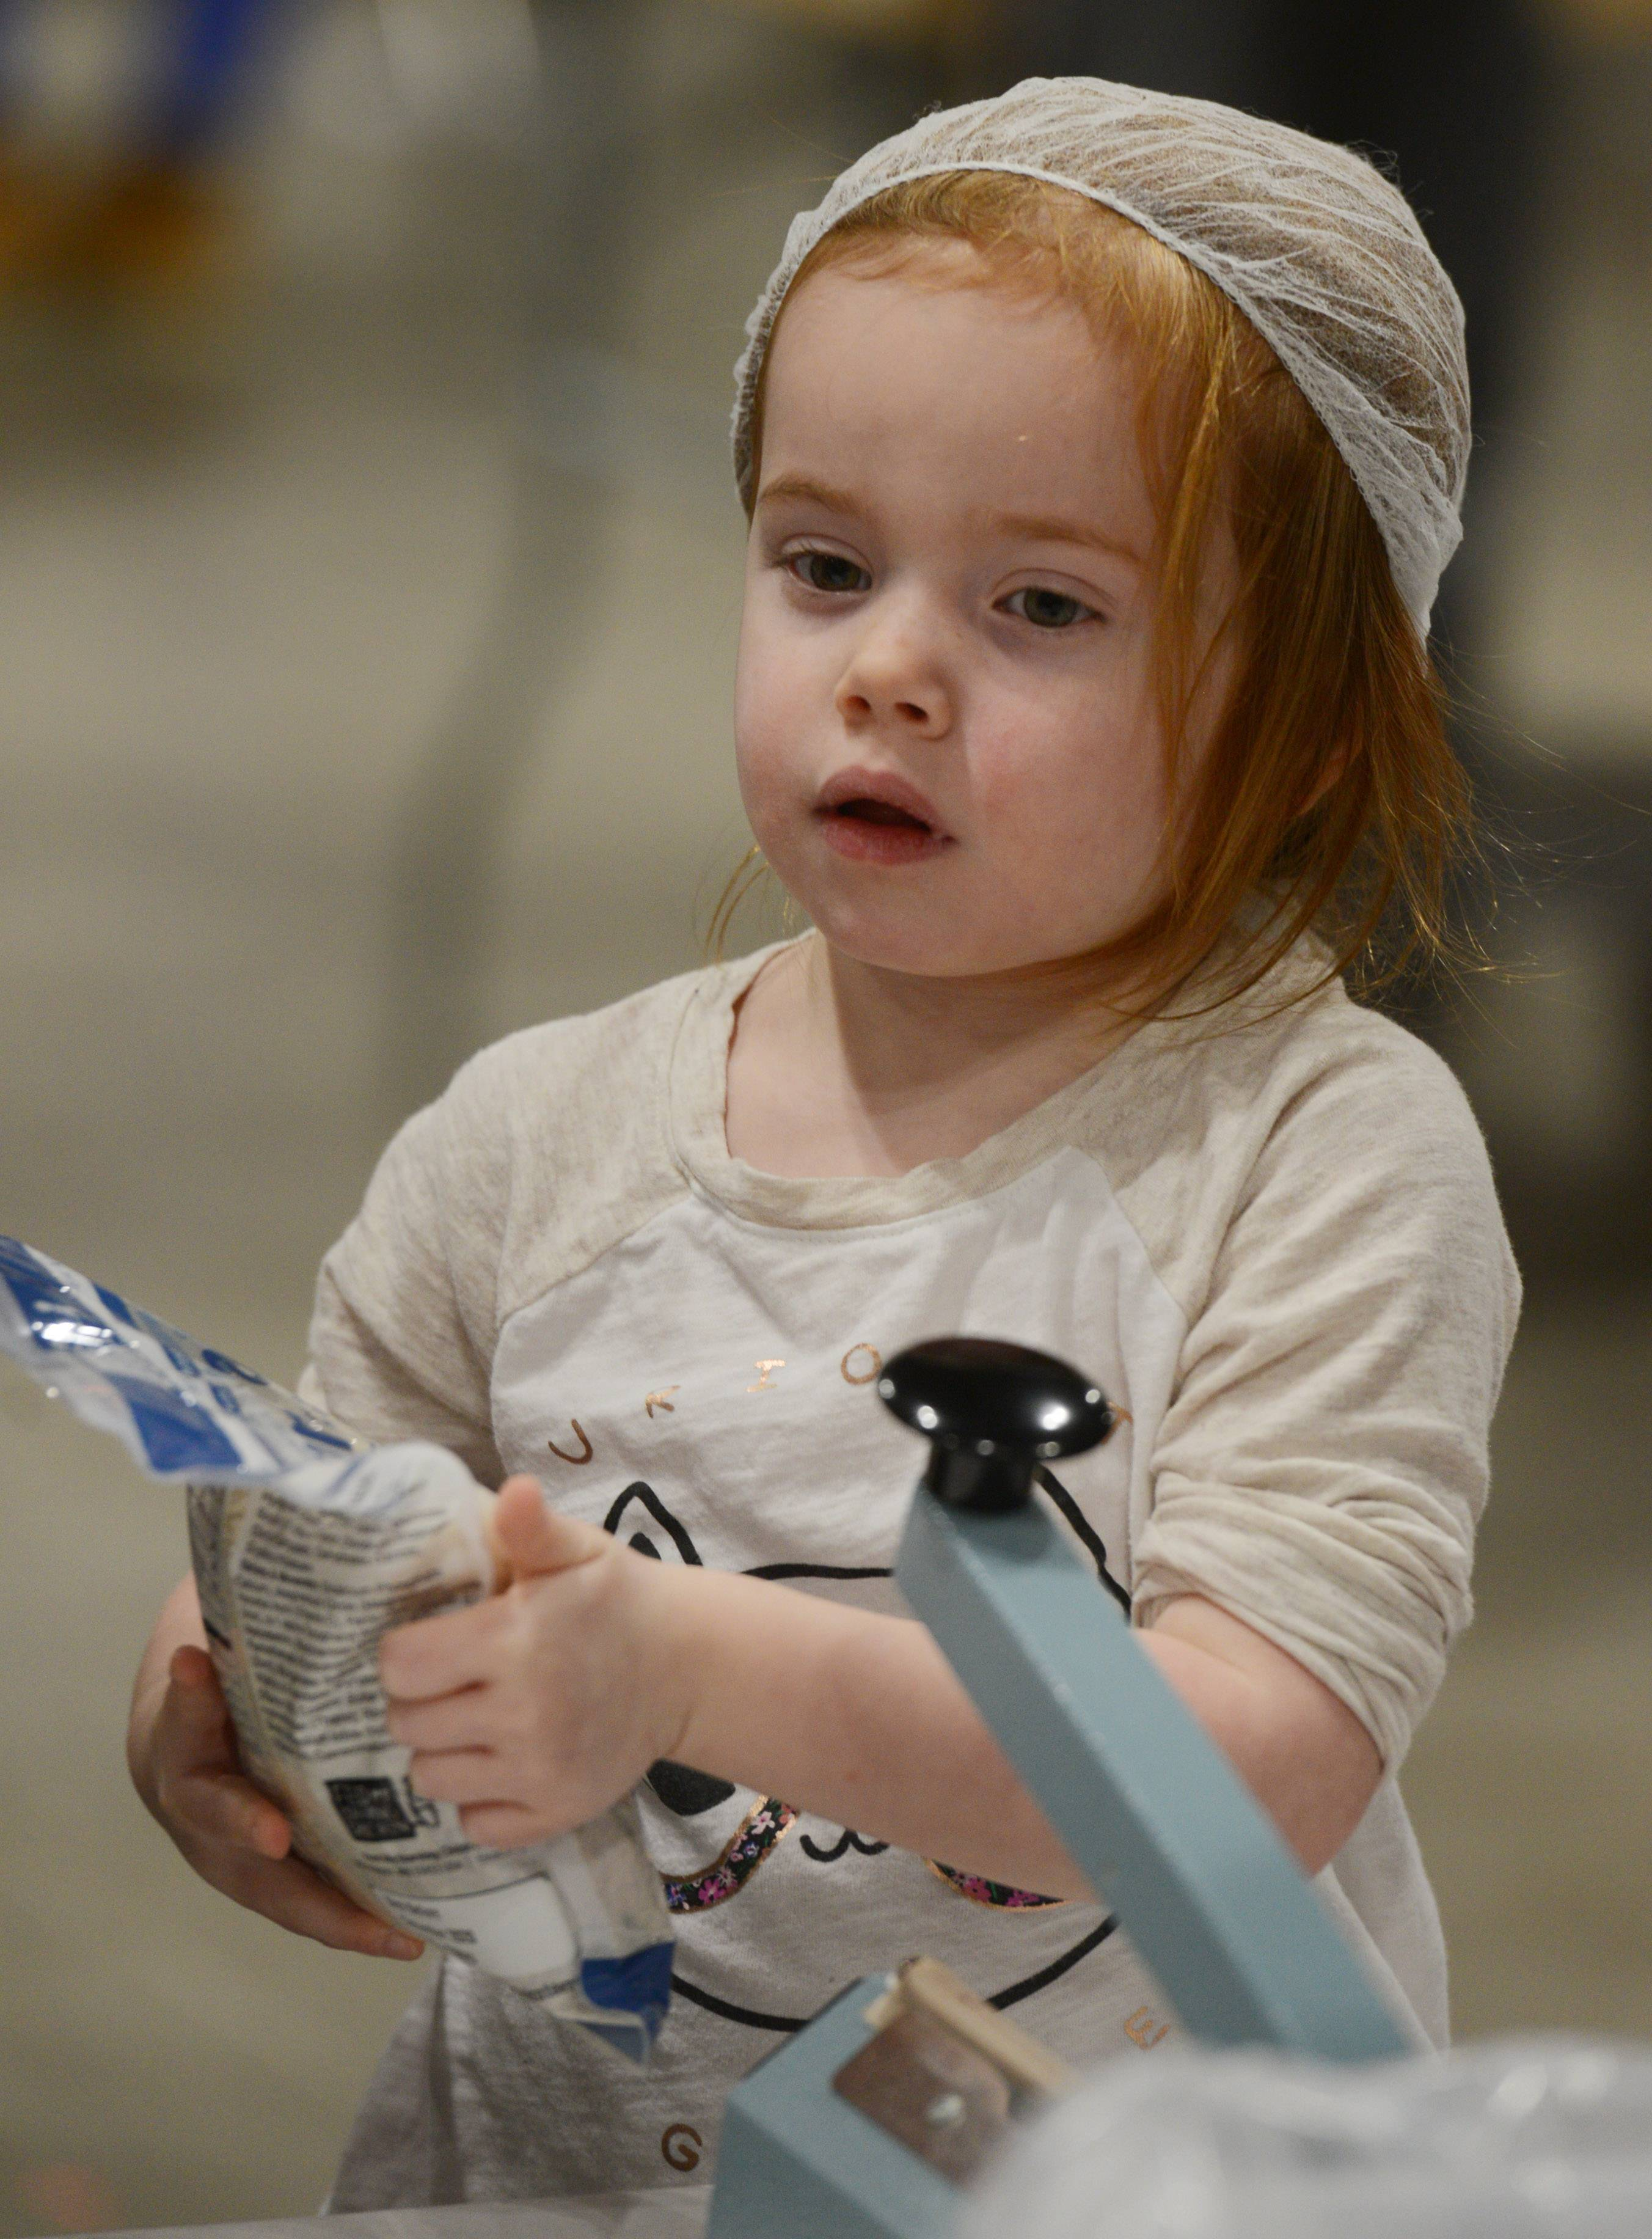 Feed My Starving Children volunteer Ivy Meersman, 5, of Chicago took park in an effort to pack 1 million meals over the weekend during Feed My Starving Children's Hope Filled Holiday MobilePack event at the Renaissance Schaumburg Convention Center.